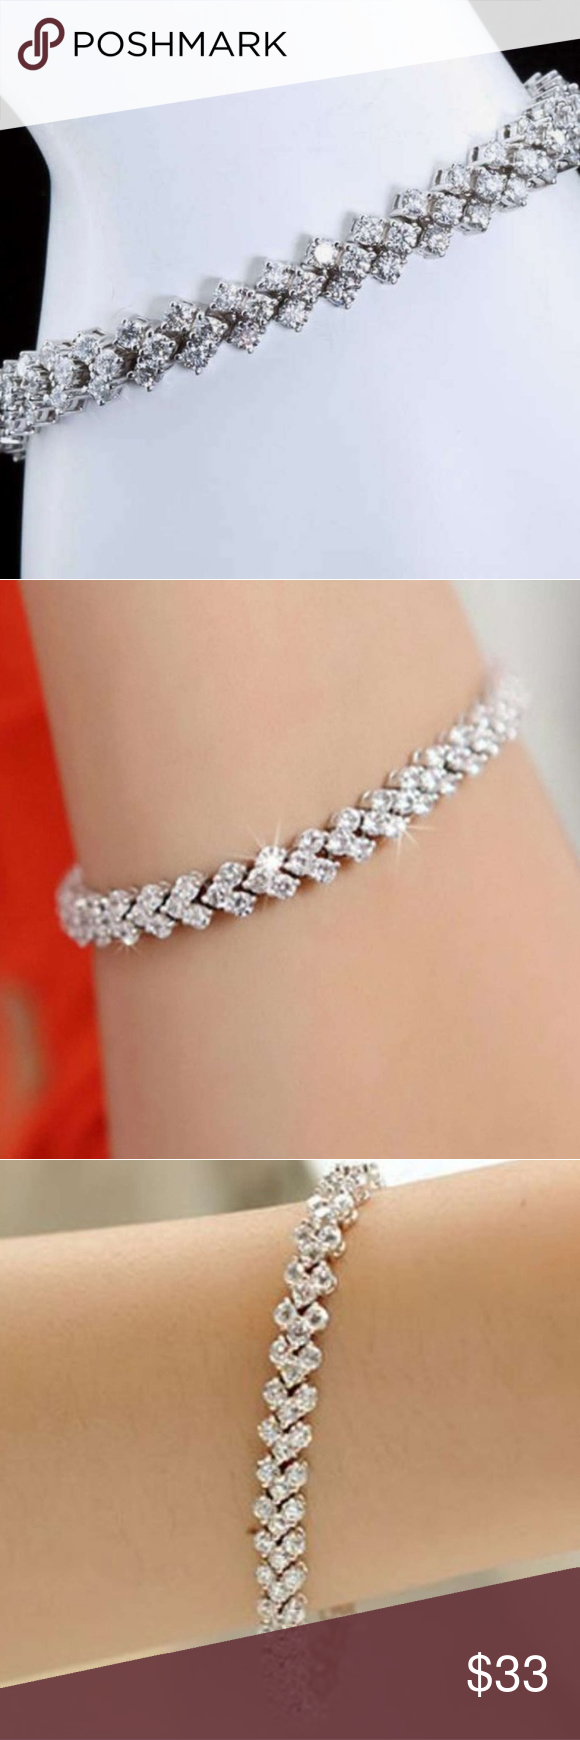 1 4 Ct T W Diamond Tennis Bracelet Adorn Her Wrist In The Lavish Display Of This Gleaming 1 4 Ct T W Diamond Tennis Bracelet In St My Posh Picks Fashi